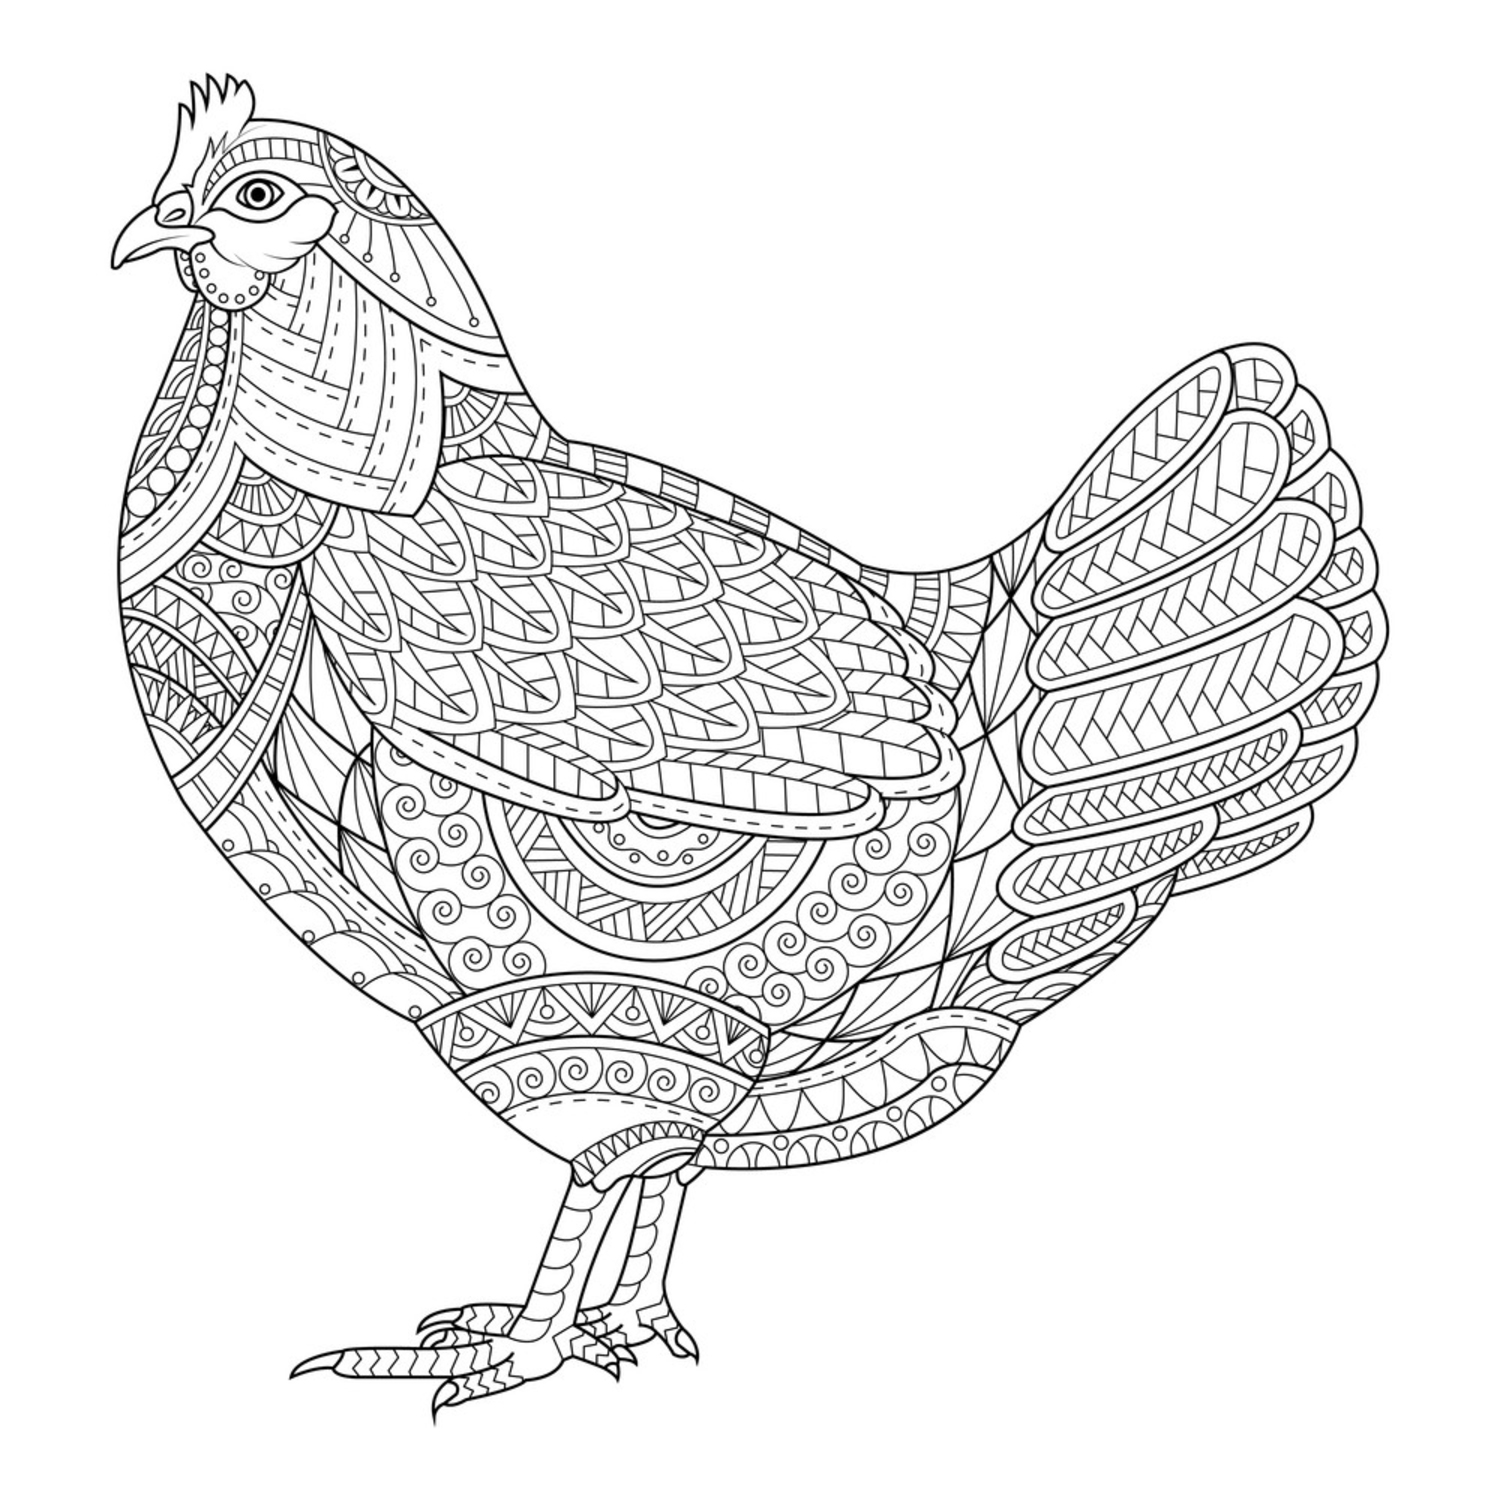 Chicken zentangle stylized for coloring book for vector 16429883